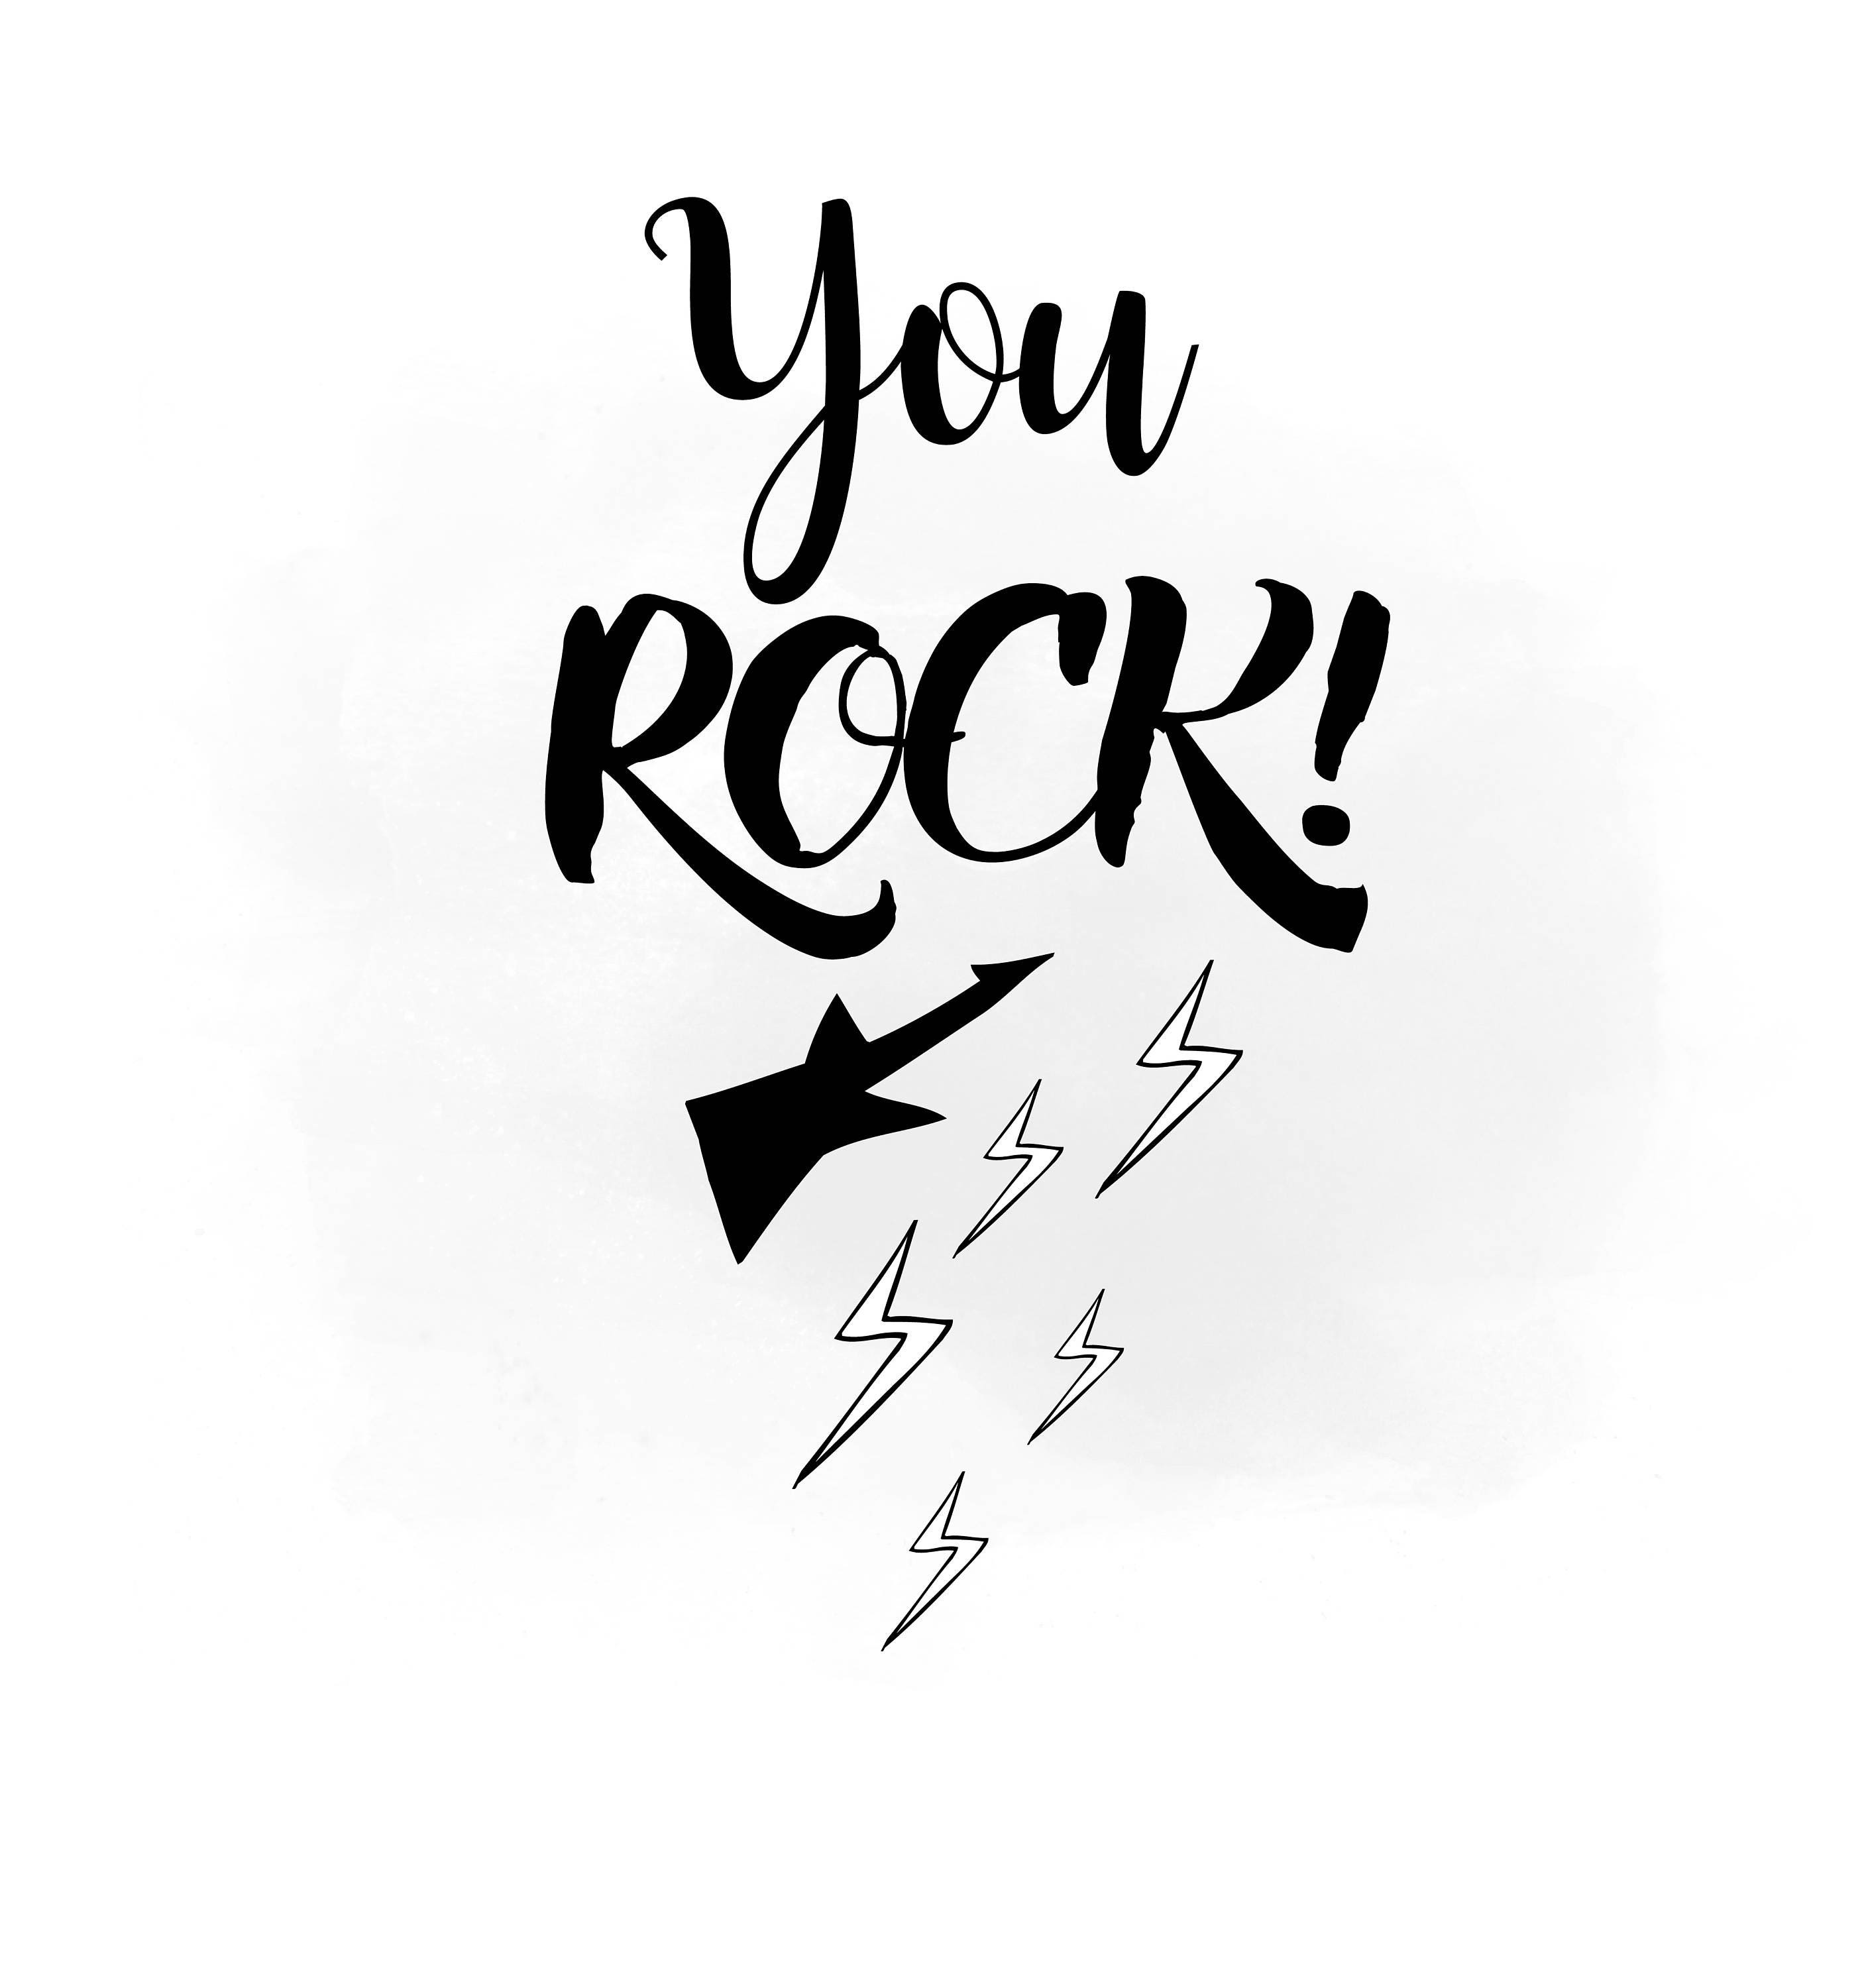 you rock svg clipart rock n roll svg you rock clipart you rock rh etsystudio com you rock clipart free you rock clipart images